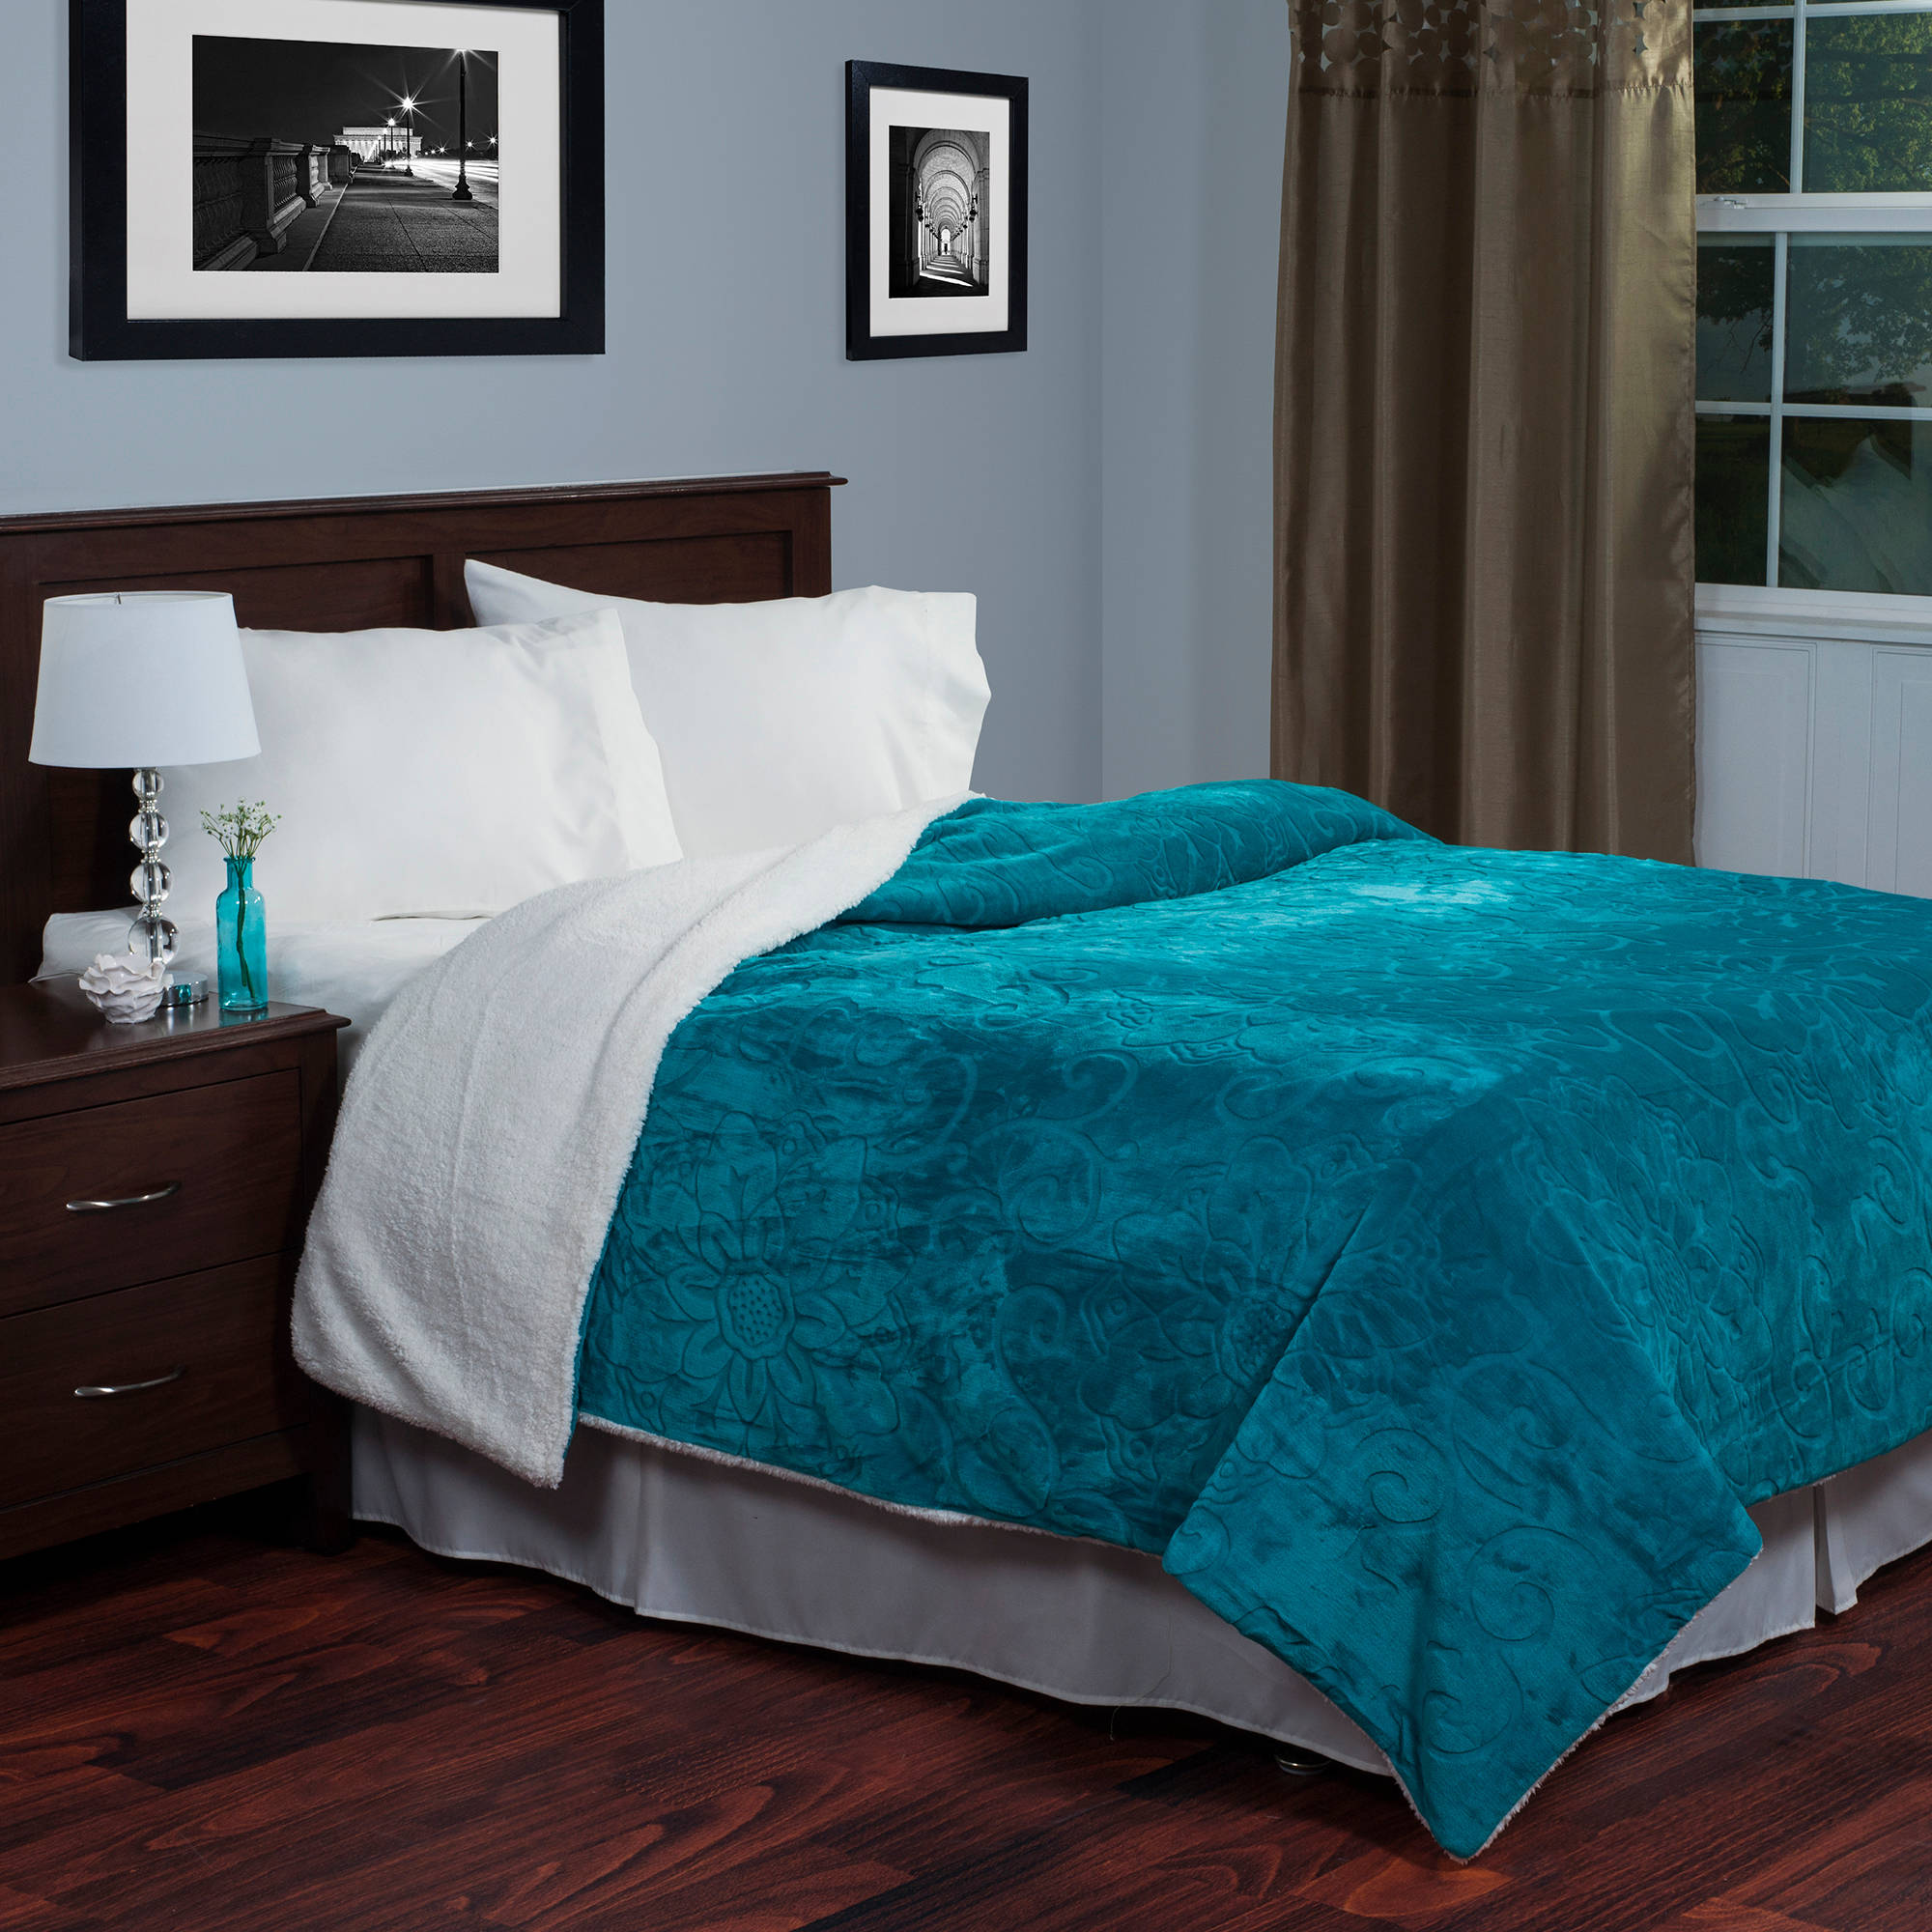 Somerset Home Floral Etched Fleece Blanket with Sherpa